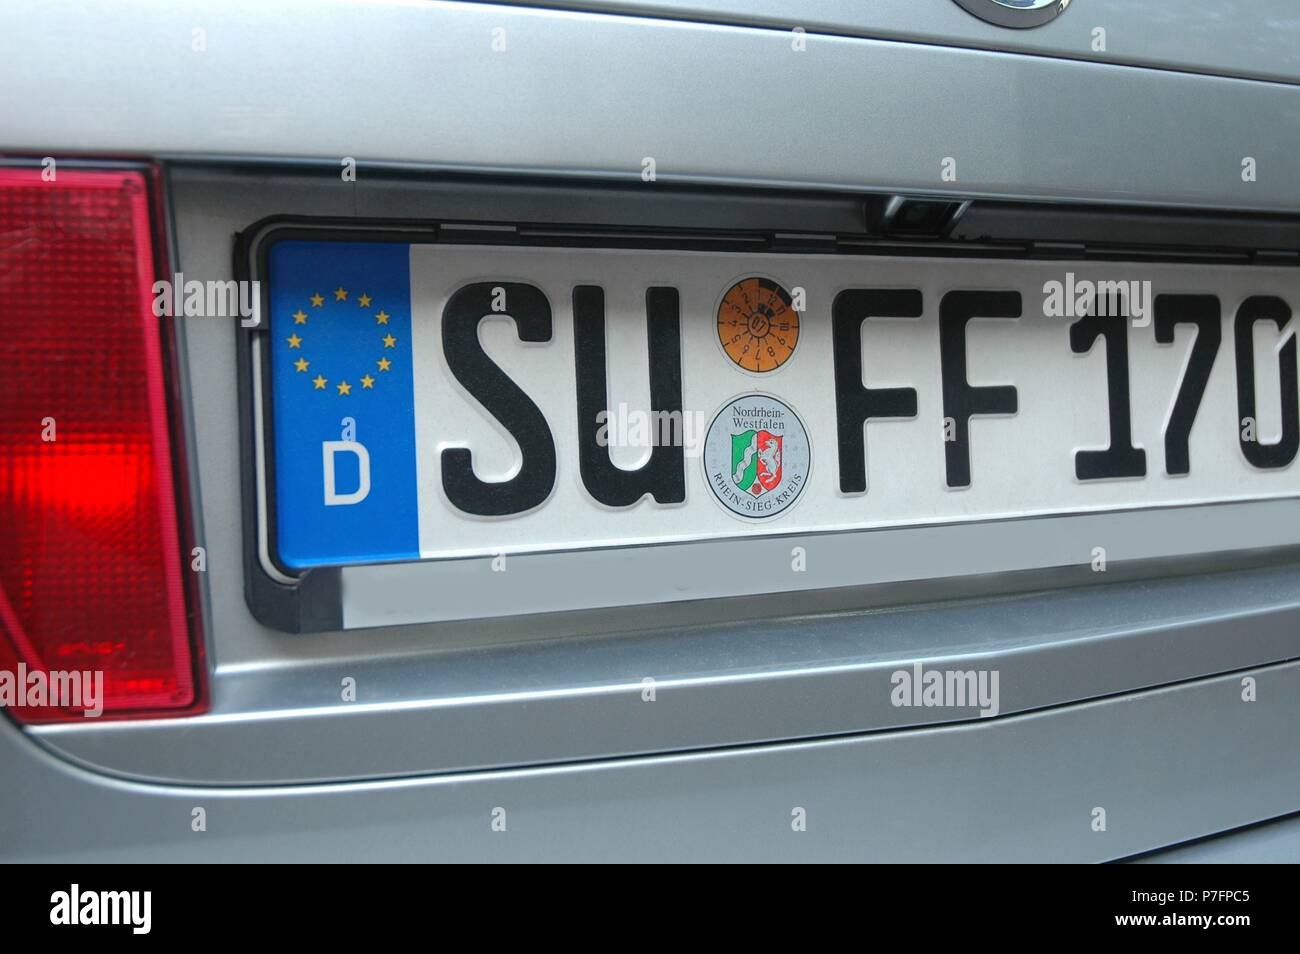 License plate Suff, Germany - Stock Image